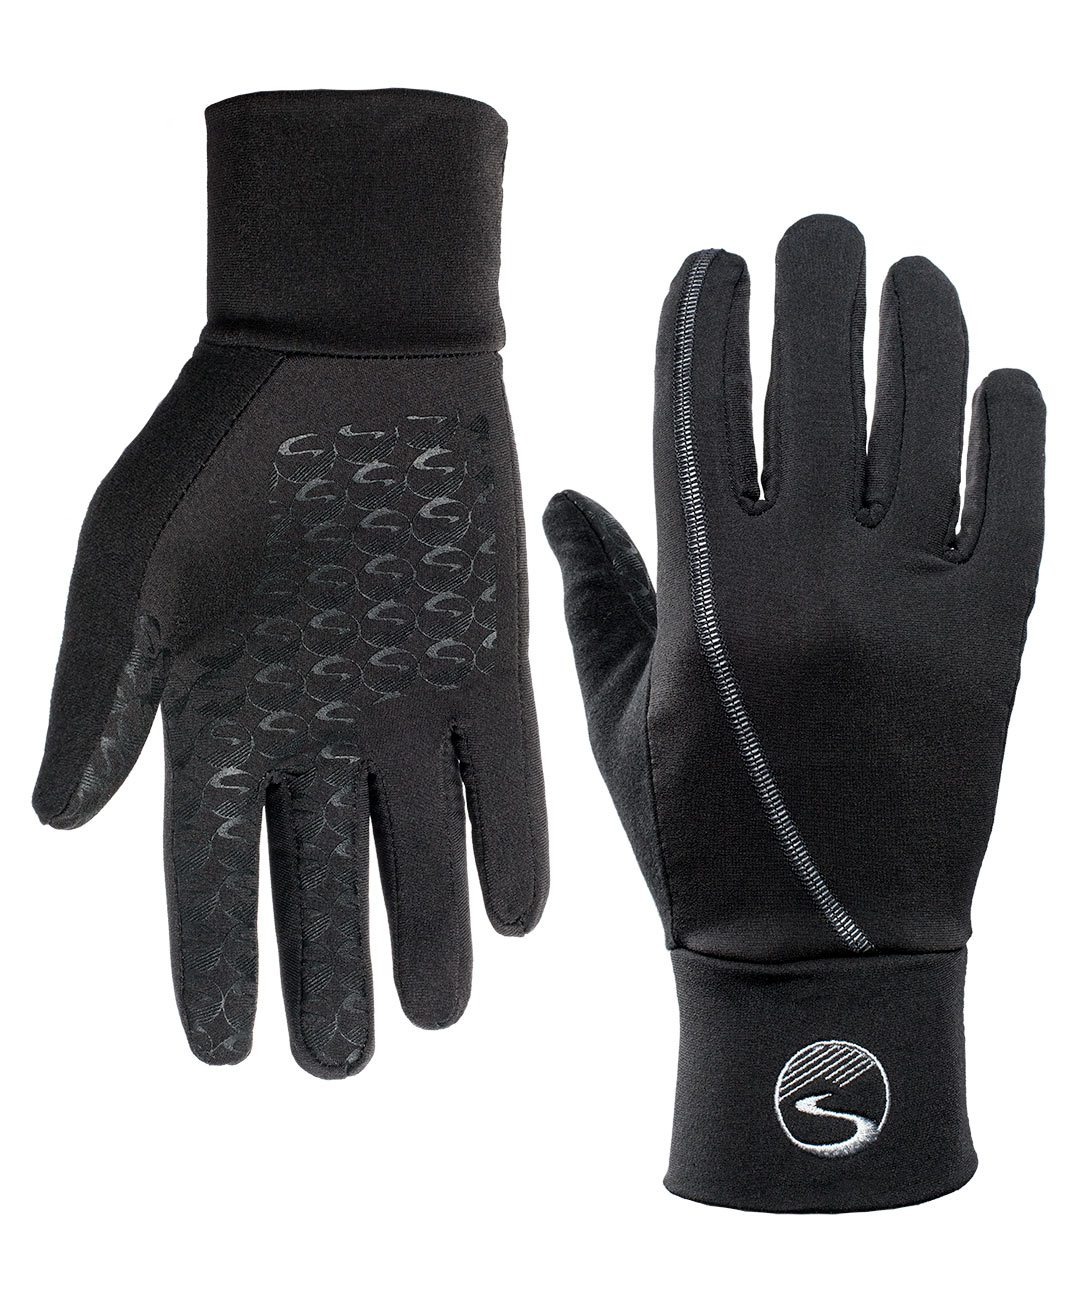 Men's Crosspoint Liner Glove